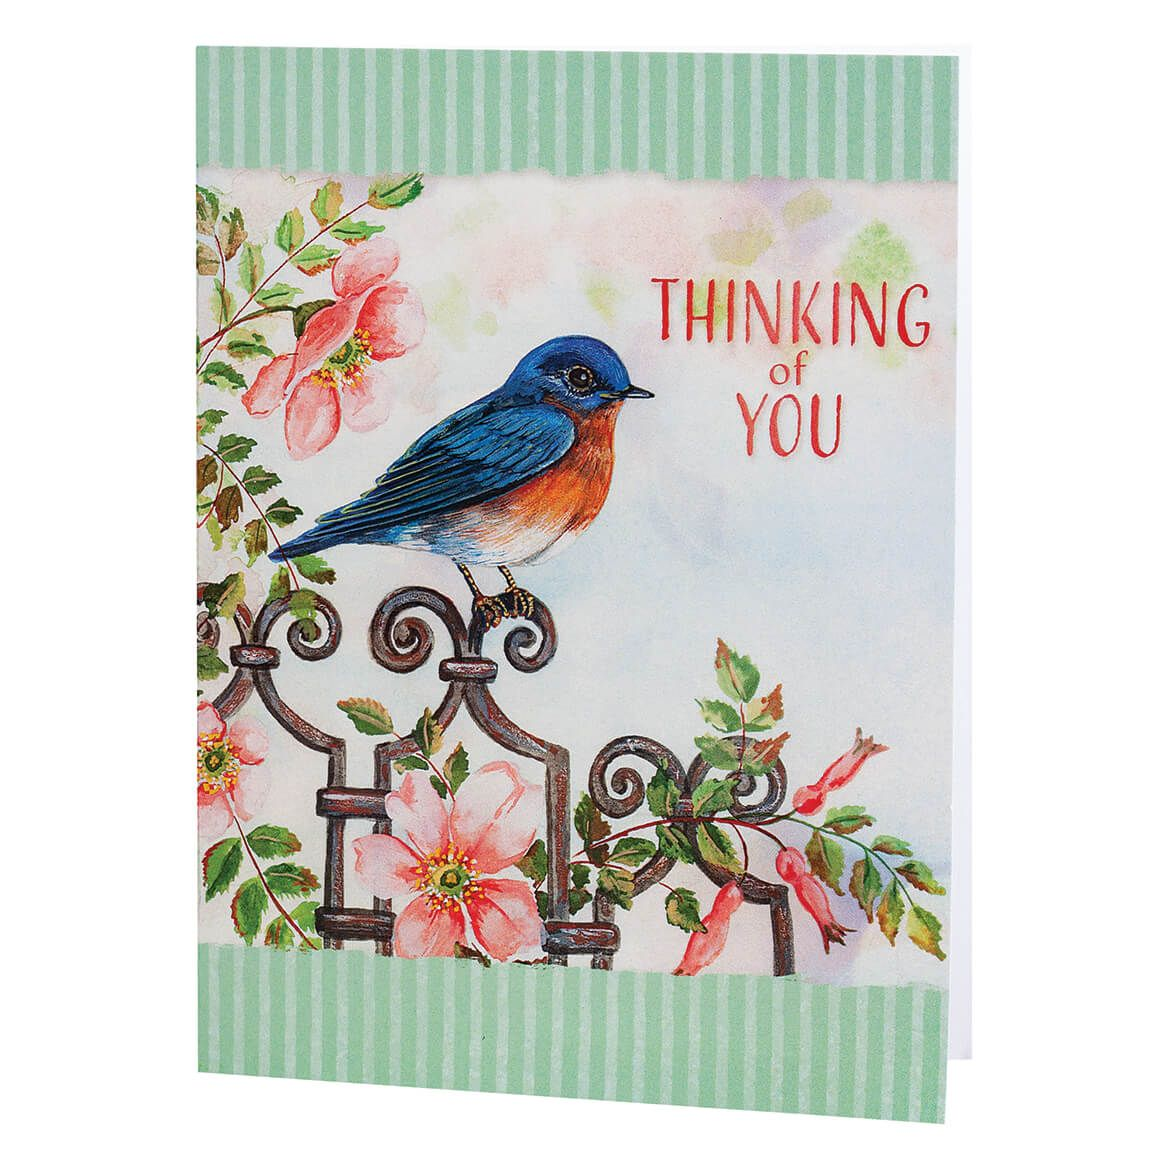 Thinking of You Variety Pack Cards, Set of 20-372257